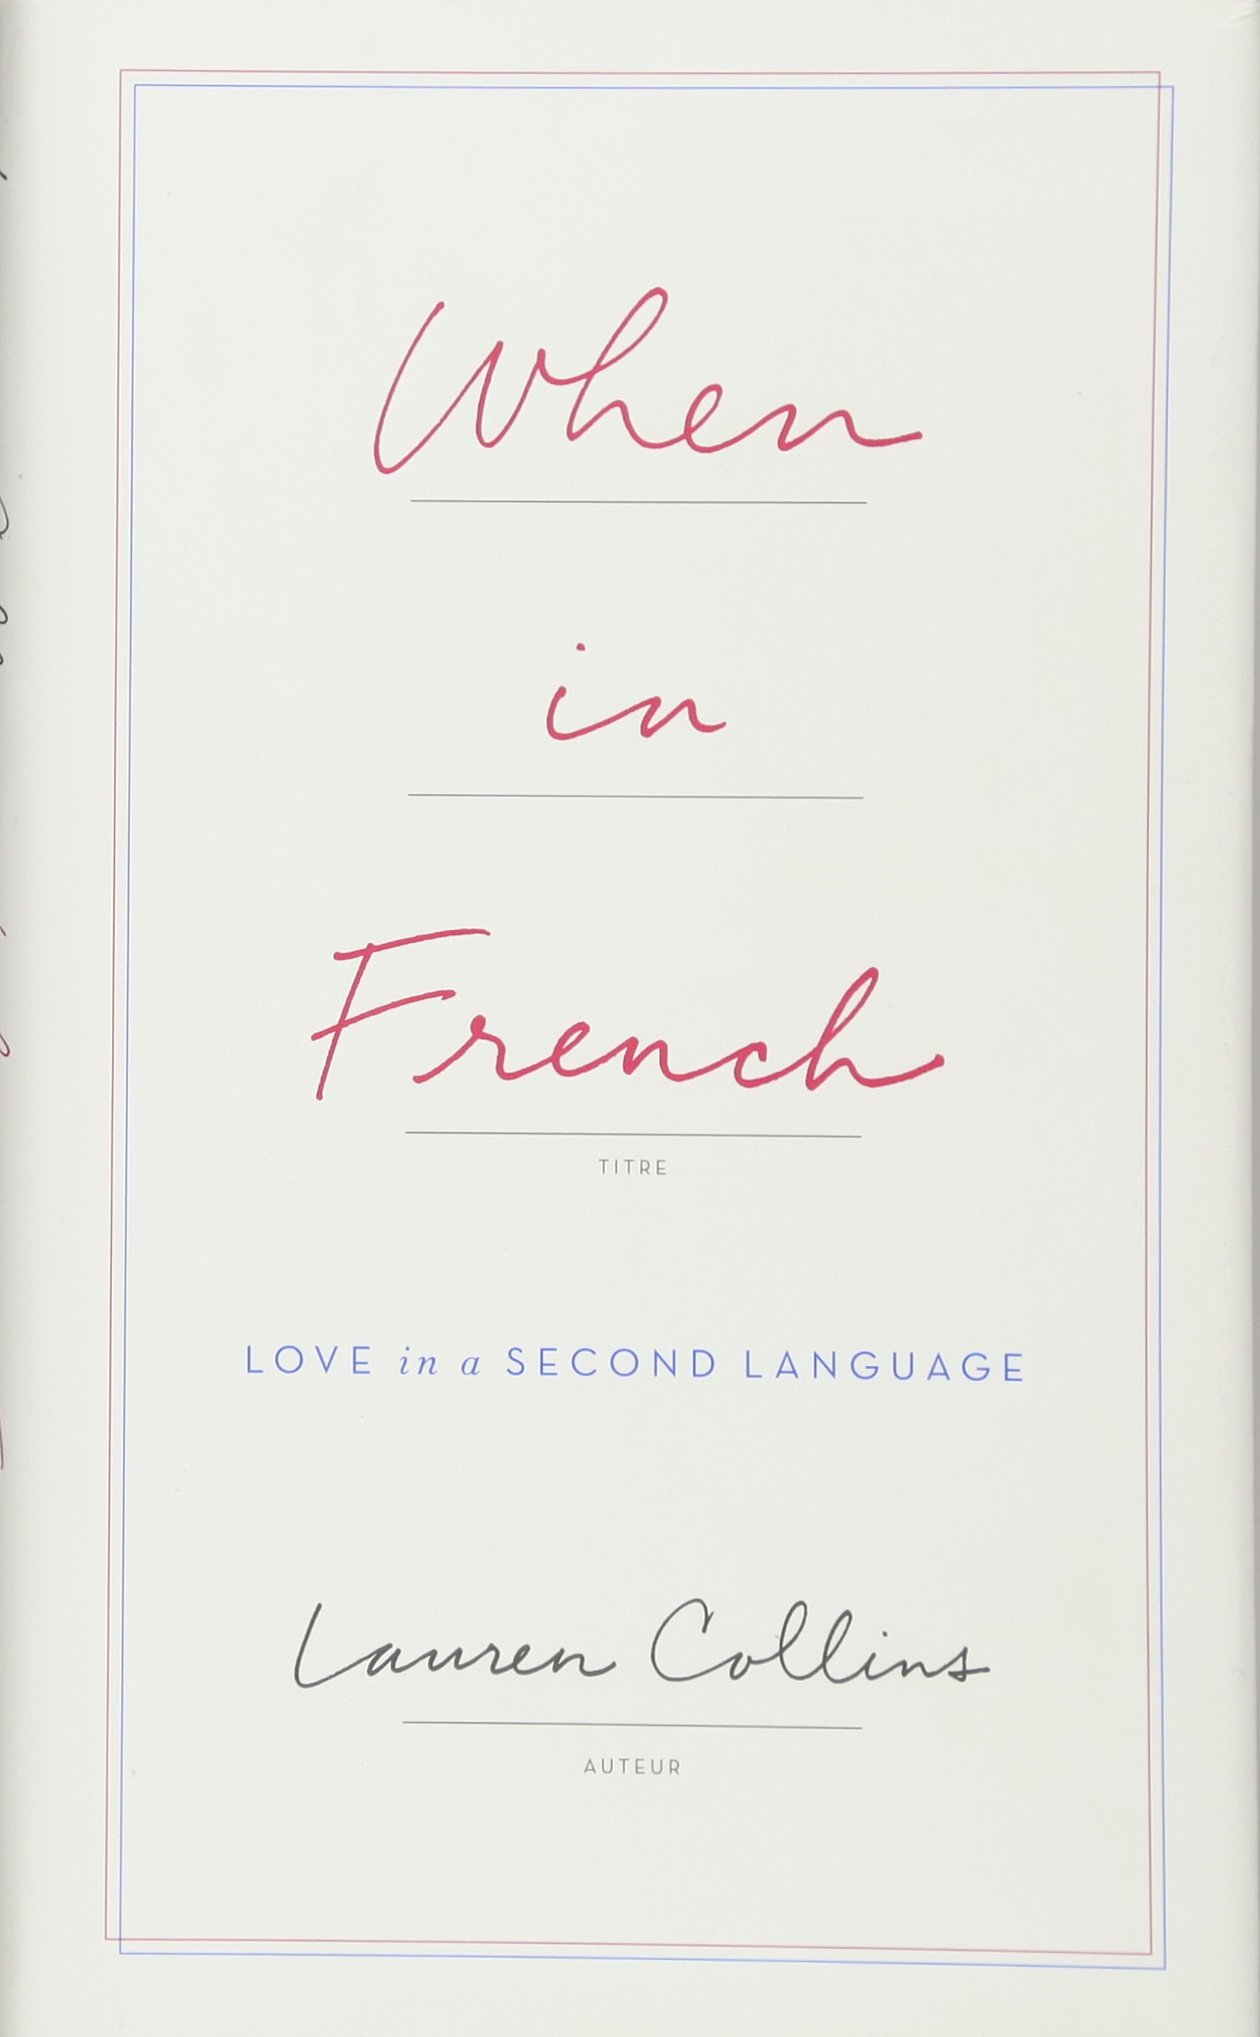 When in french love in a second language lauren collins when in french love in a second language lauren collins 9781594206443 amazon books stopboris Choice Image